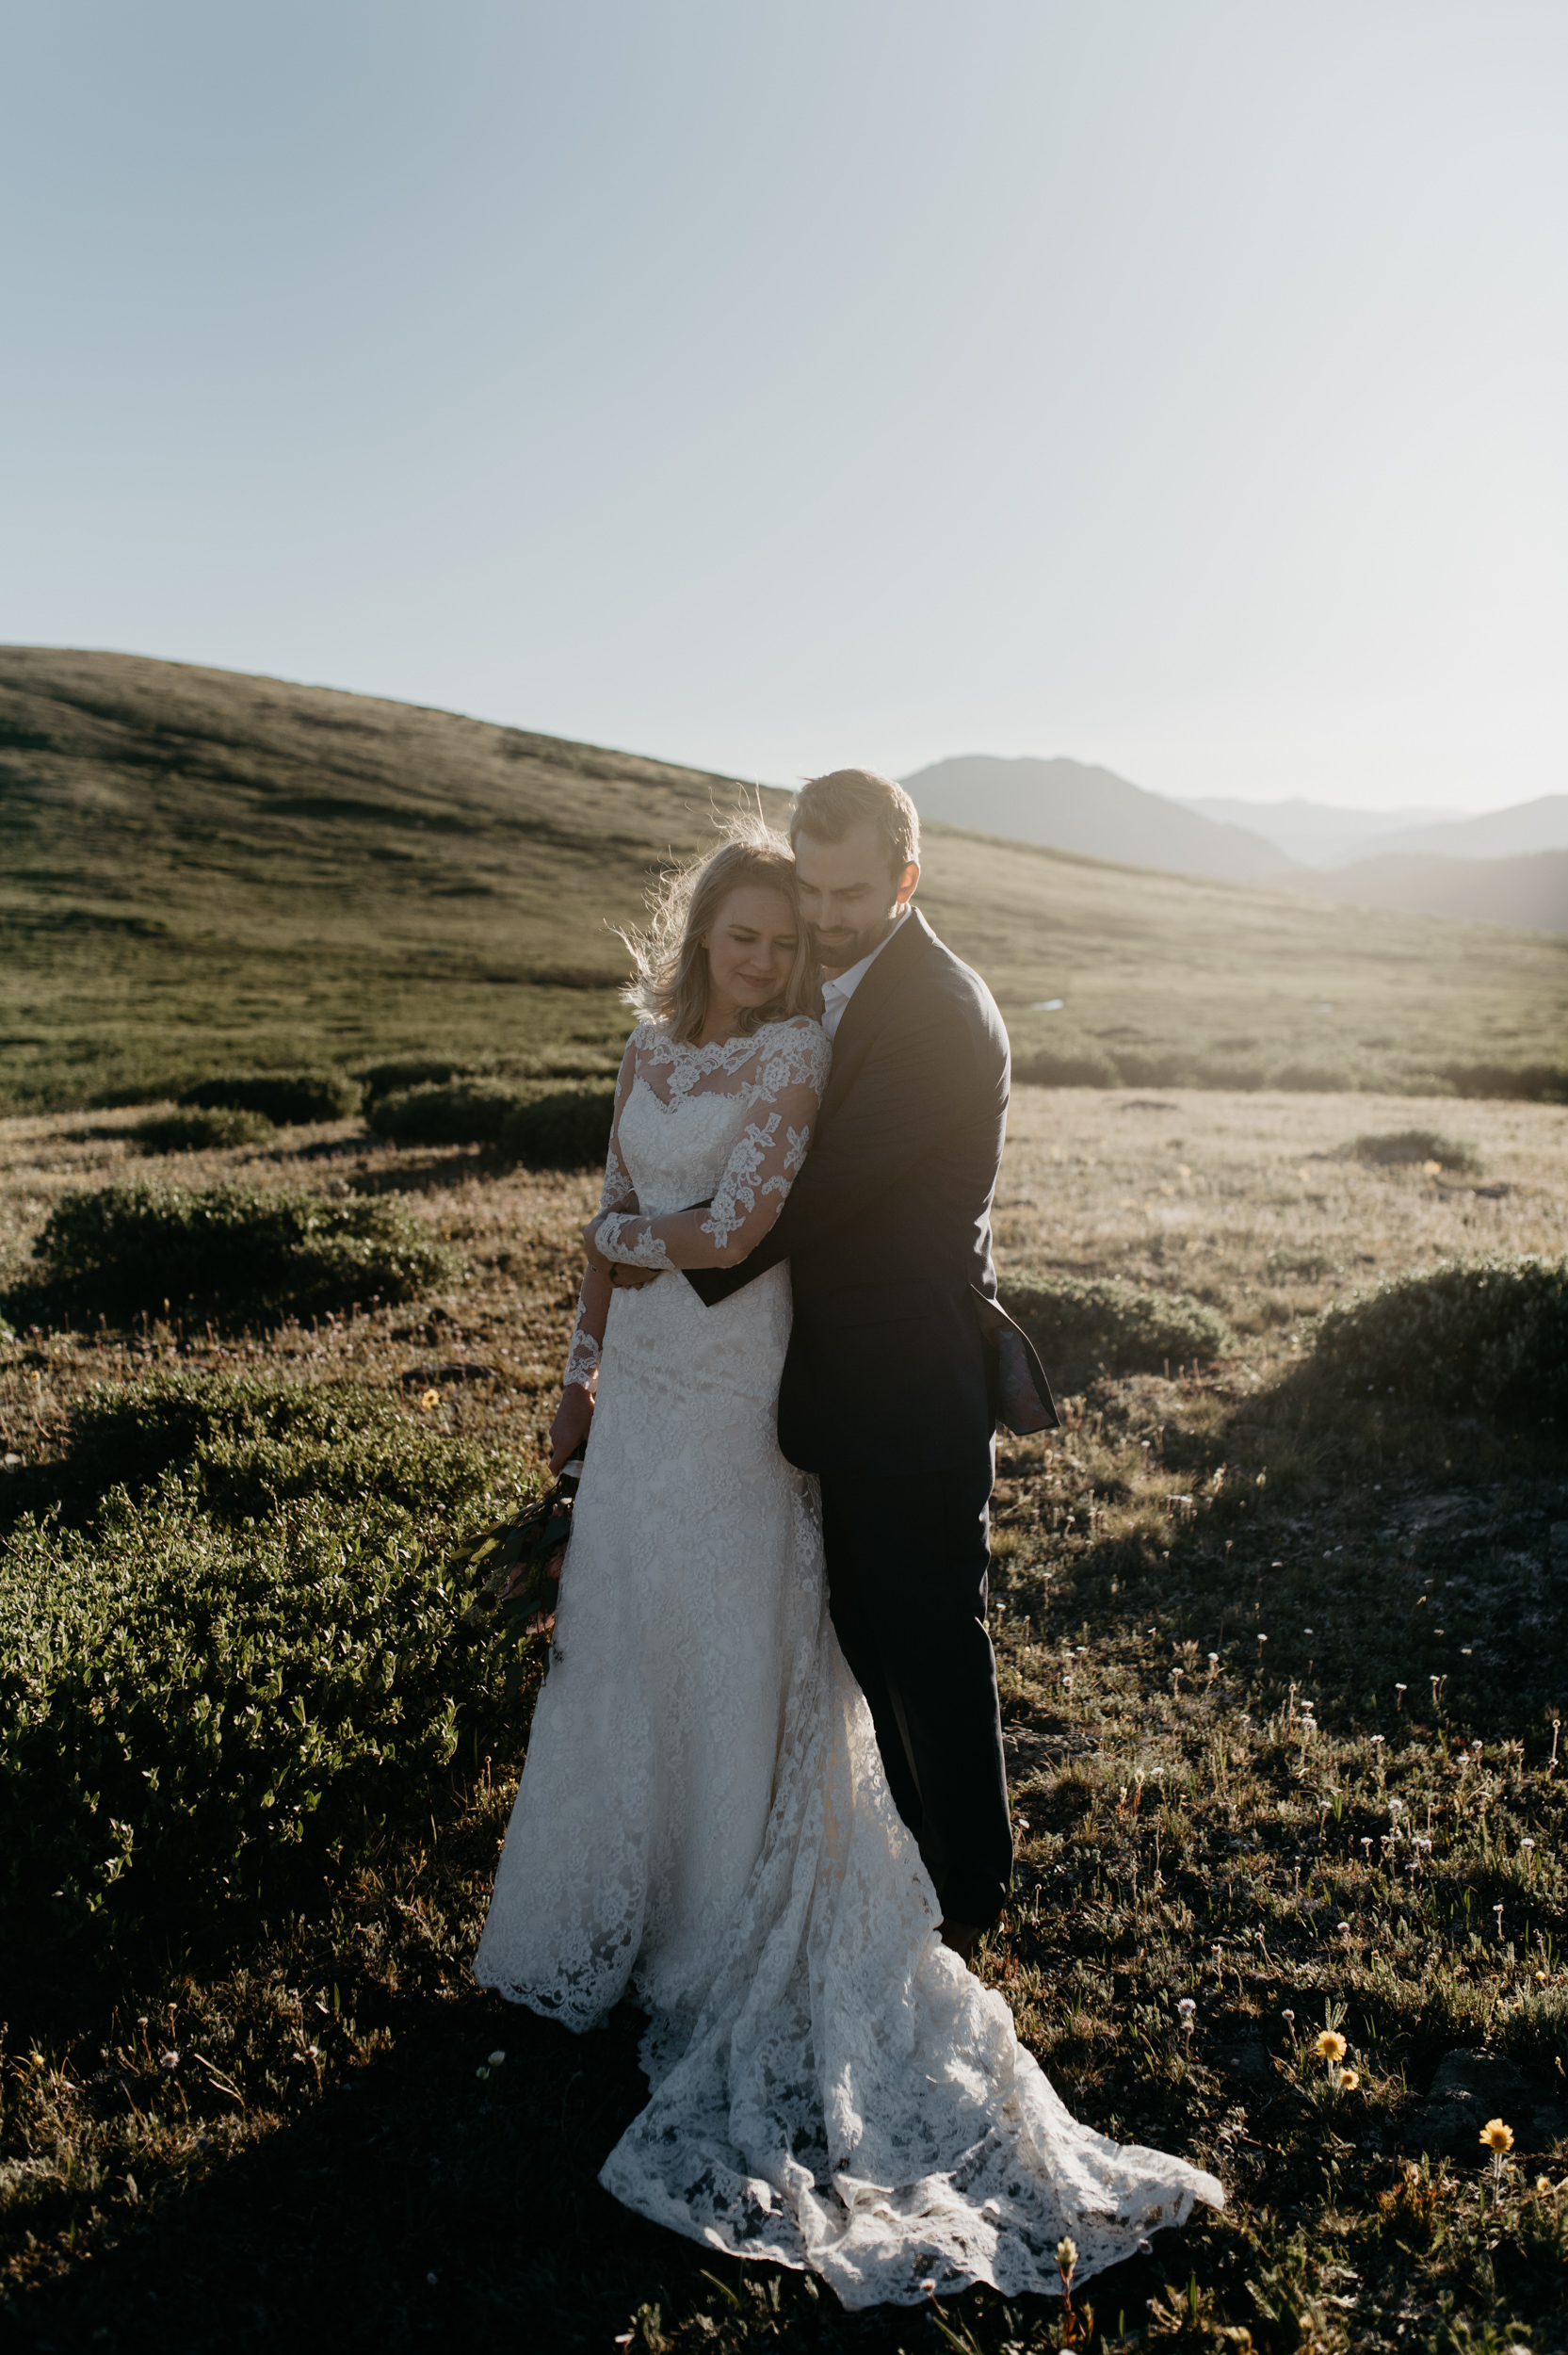 Colorado wedding and elopement photography